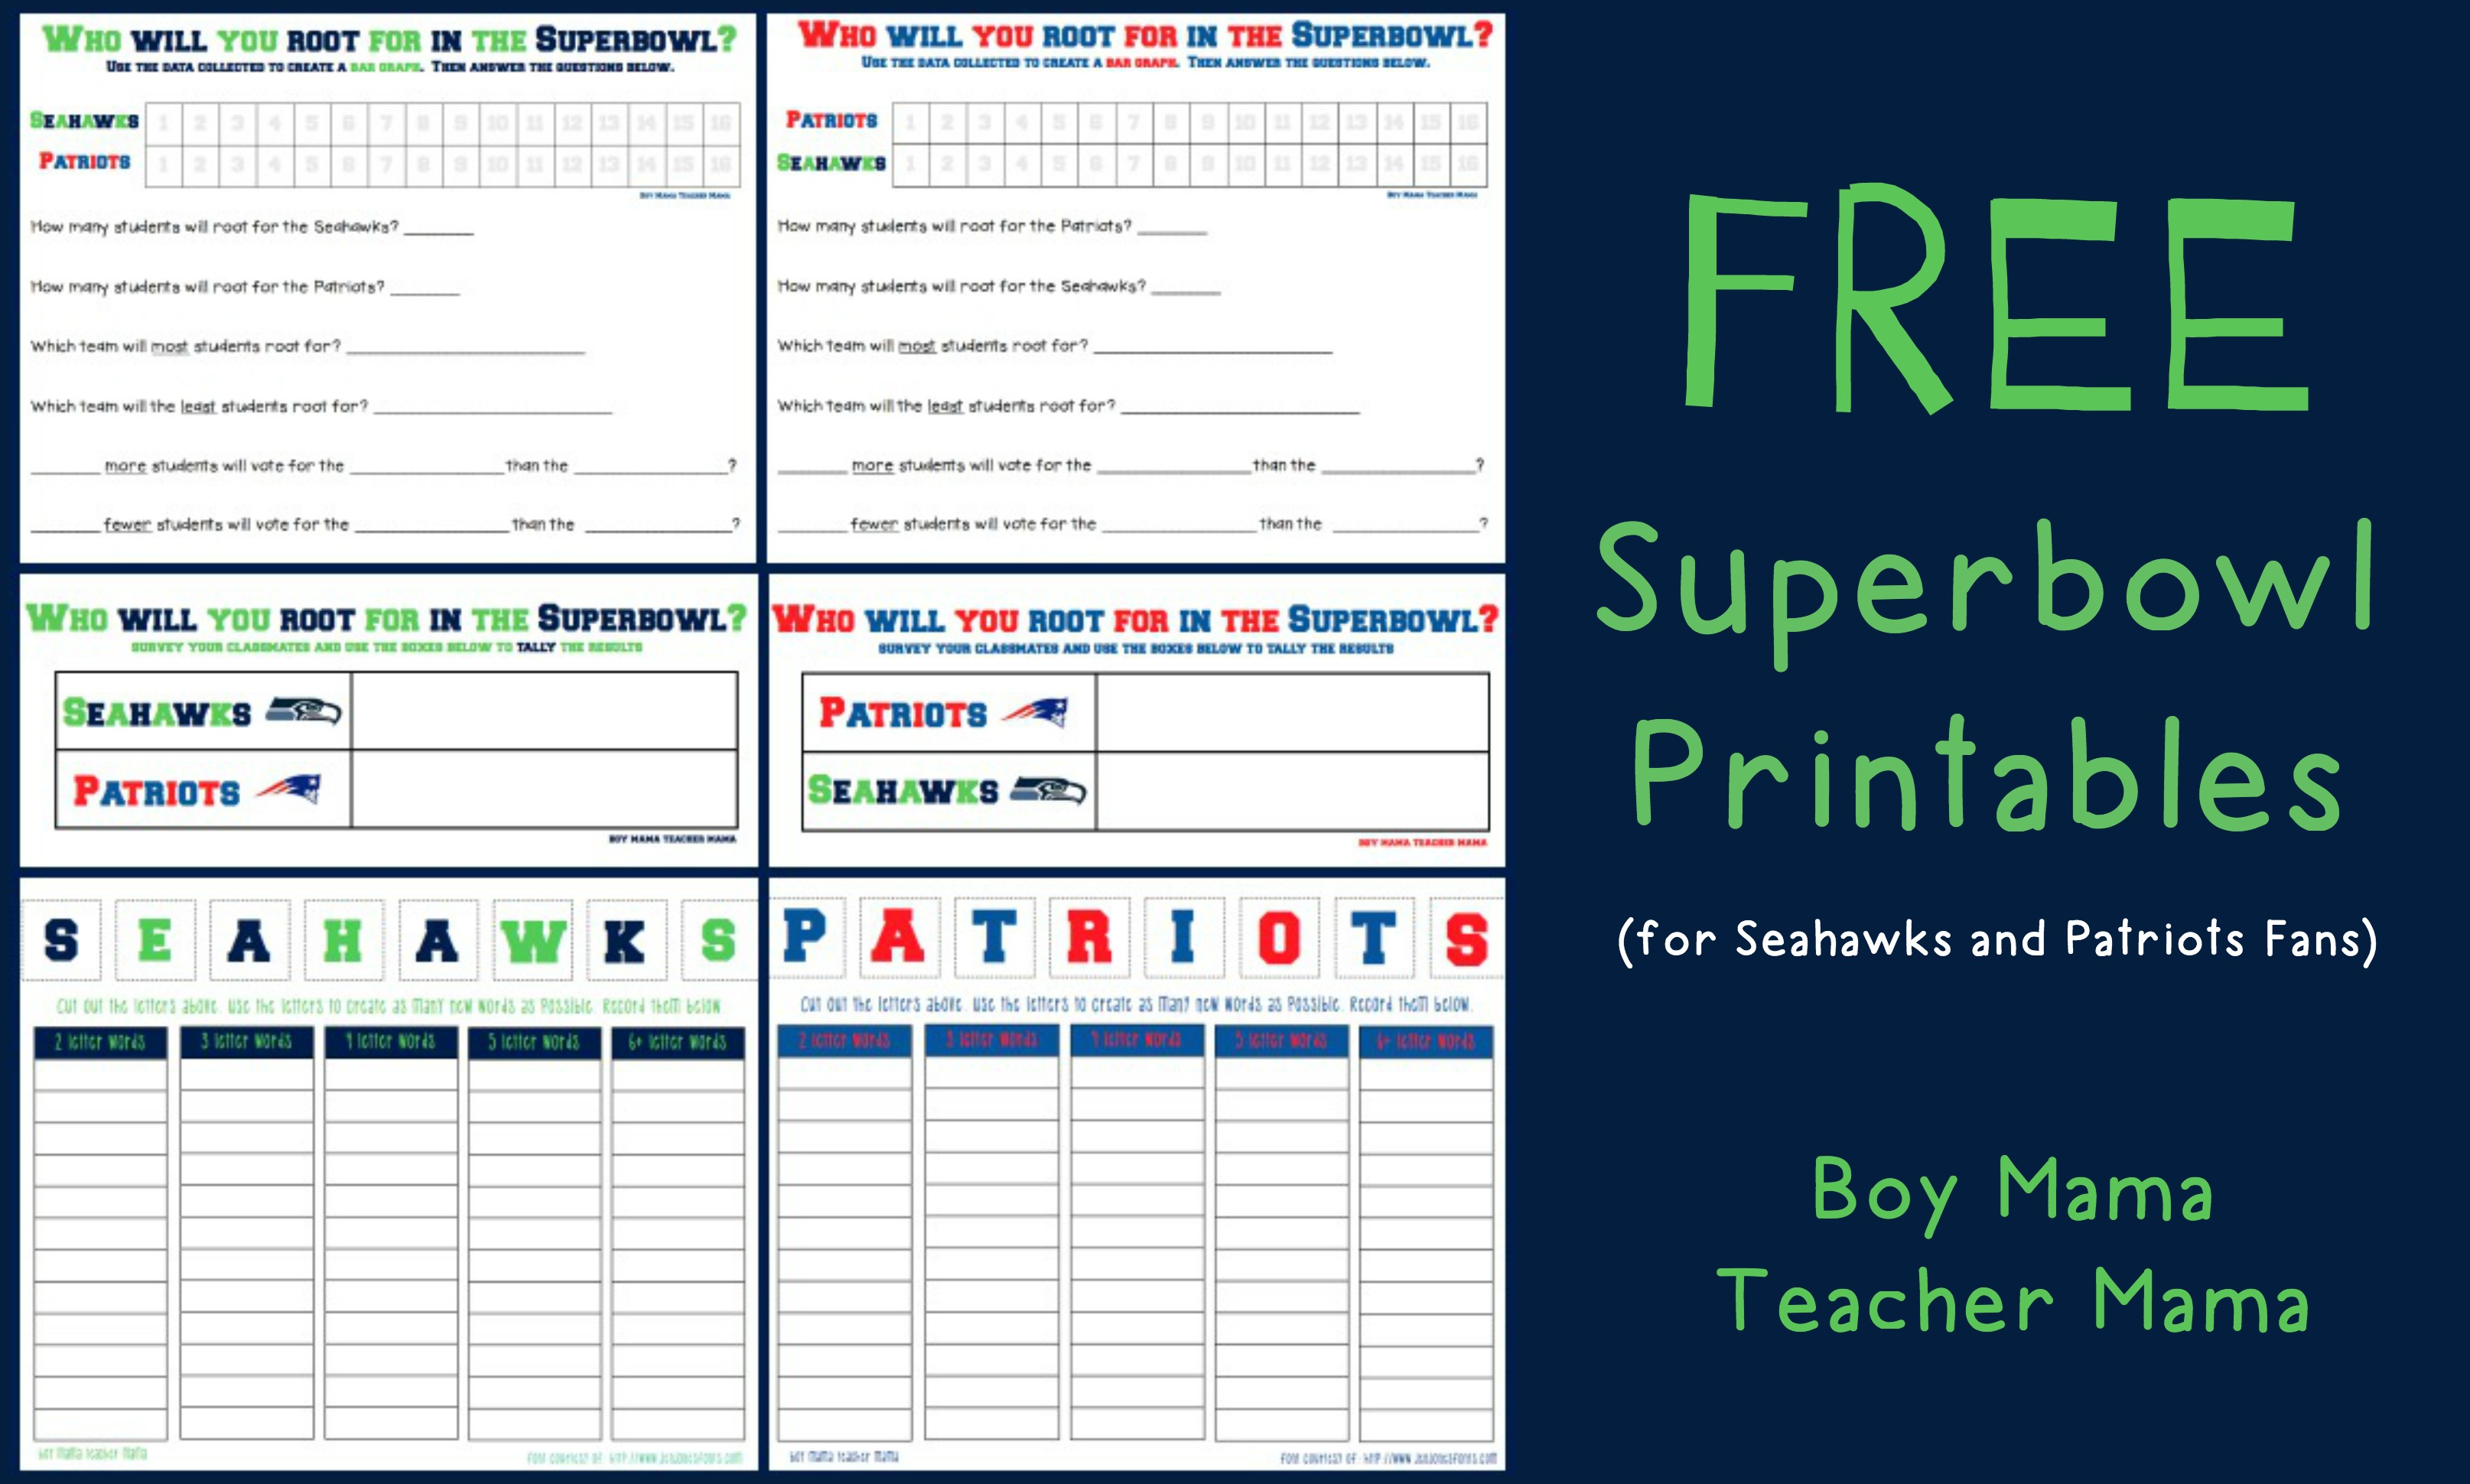 Boy Mama Teacher Mama FREE Superbowl Printables (featured)